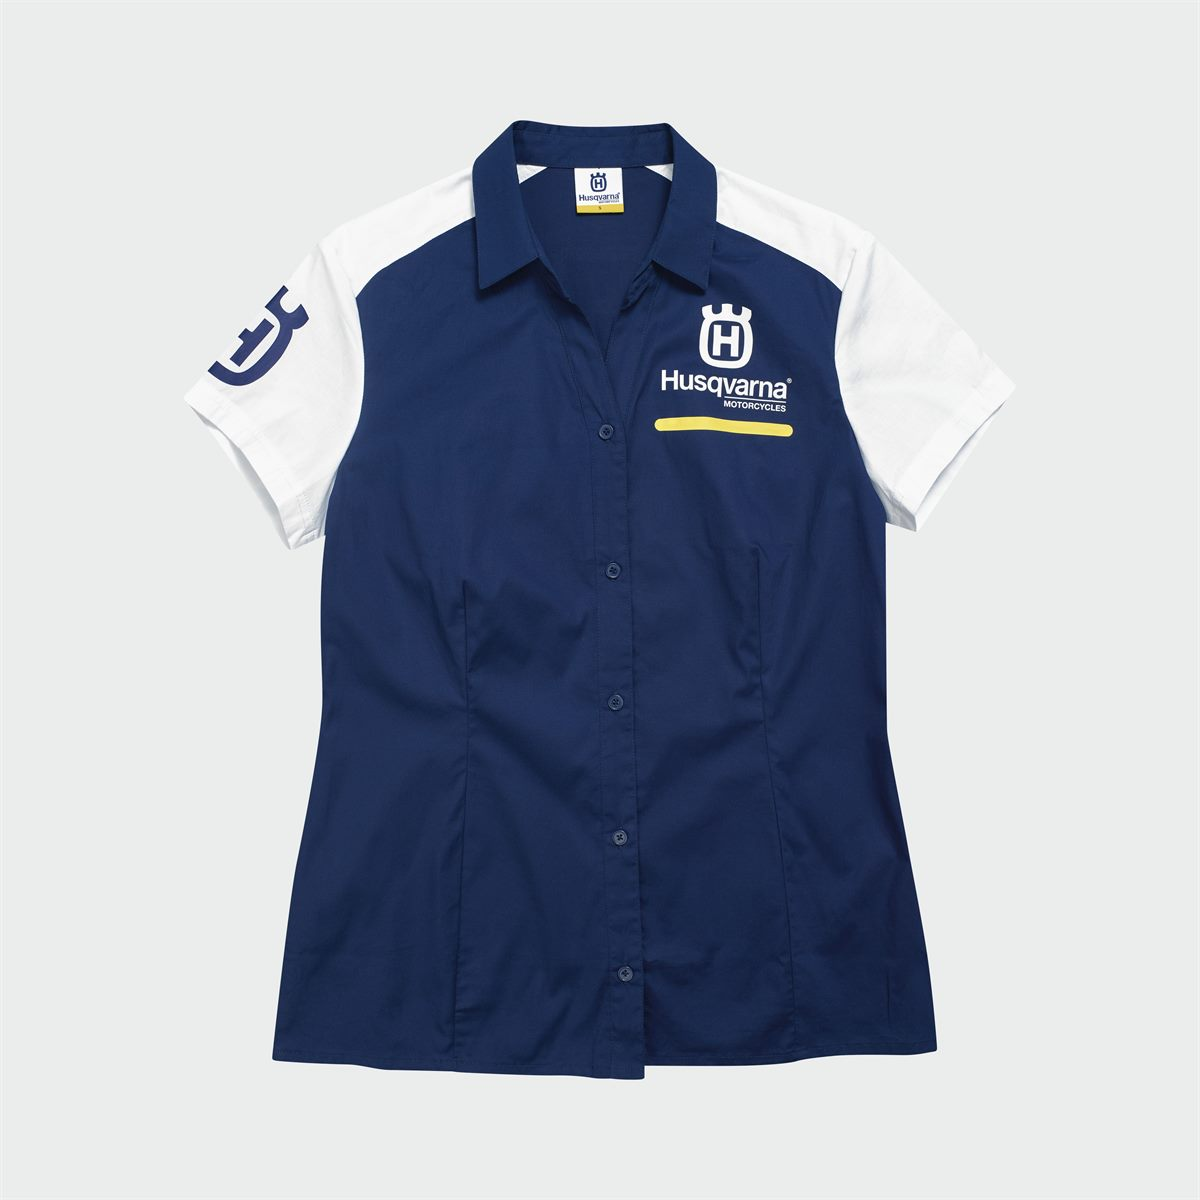 2019 HUSQVARNA REPLICA TEAM WEAR - WOMEN REPLICA TEAM SHIRT FRONT